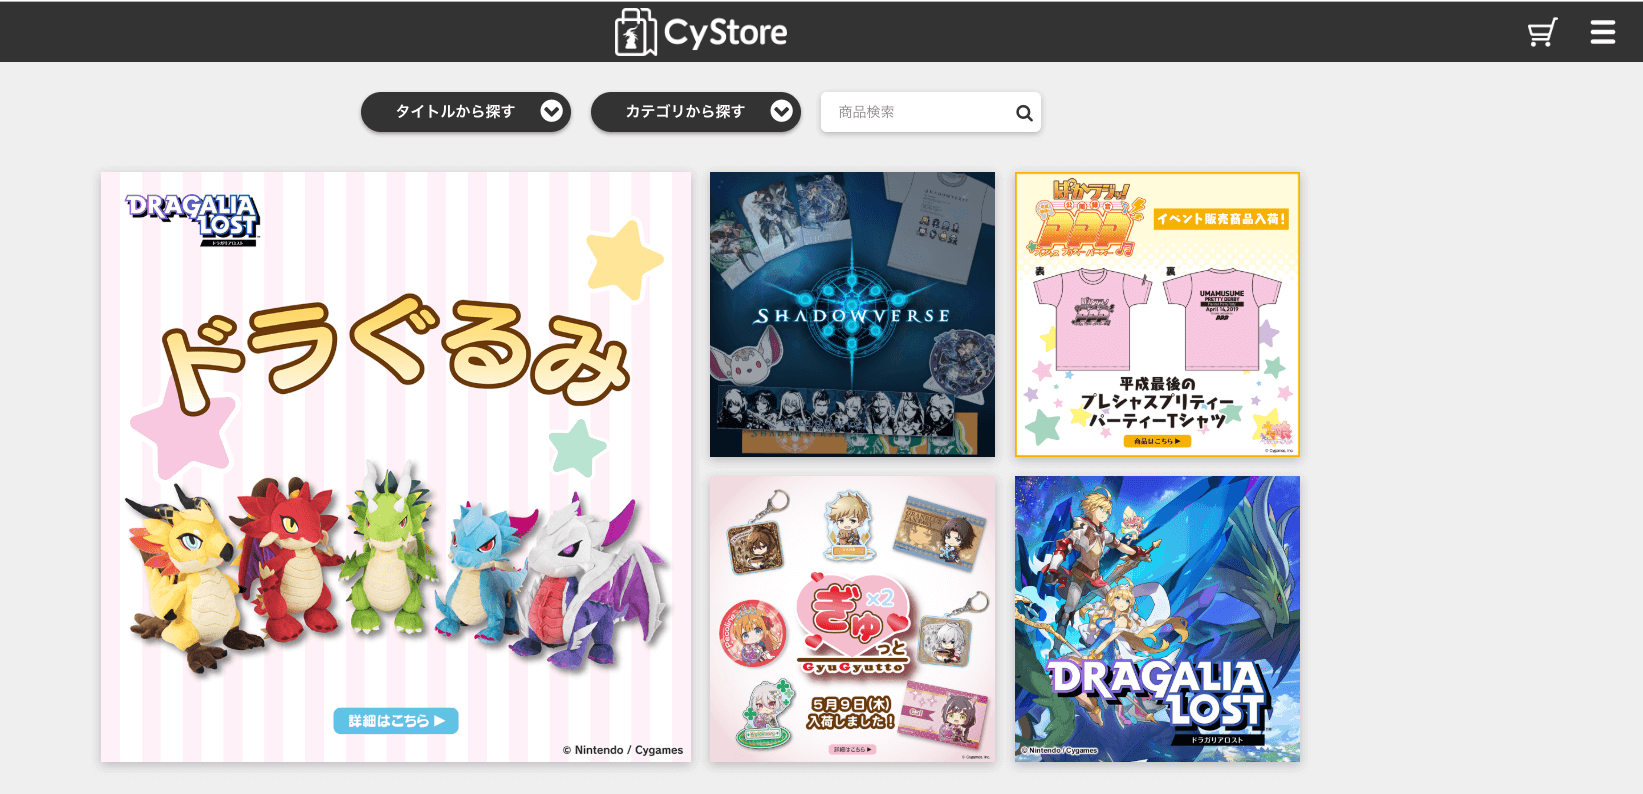 CyStore Homepage